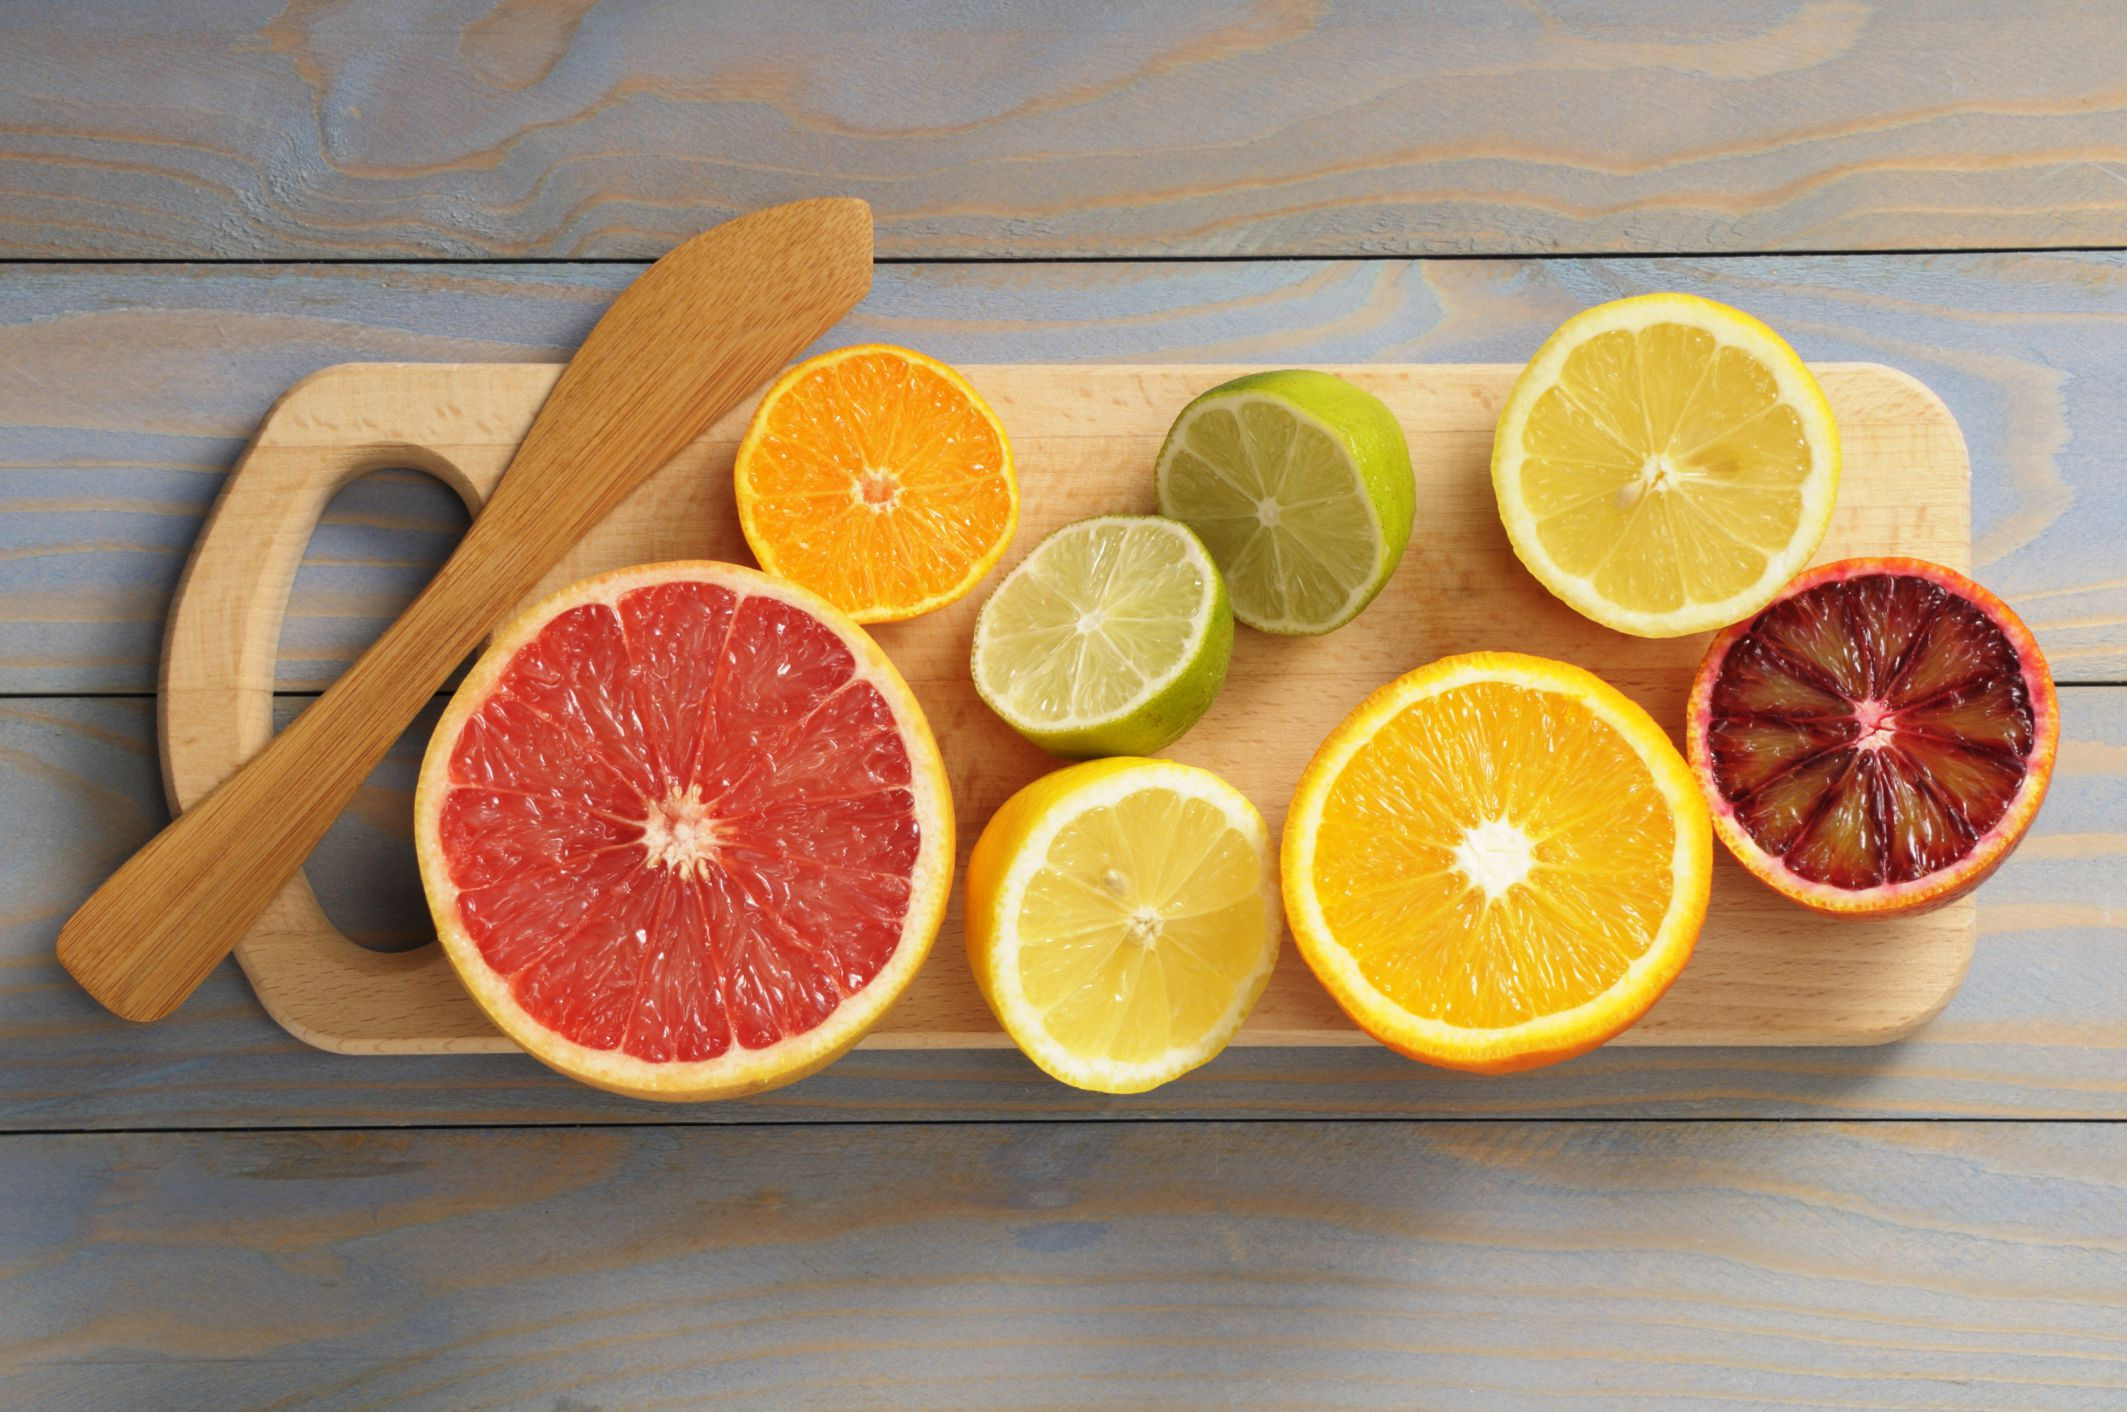 Citric Acid: Definition, Safety, Cleaning Uses, & More